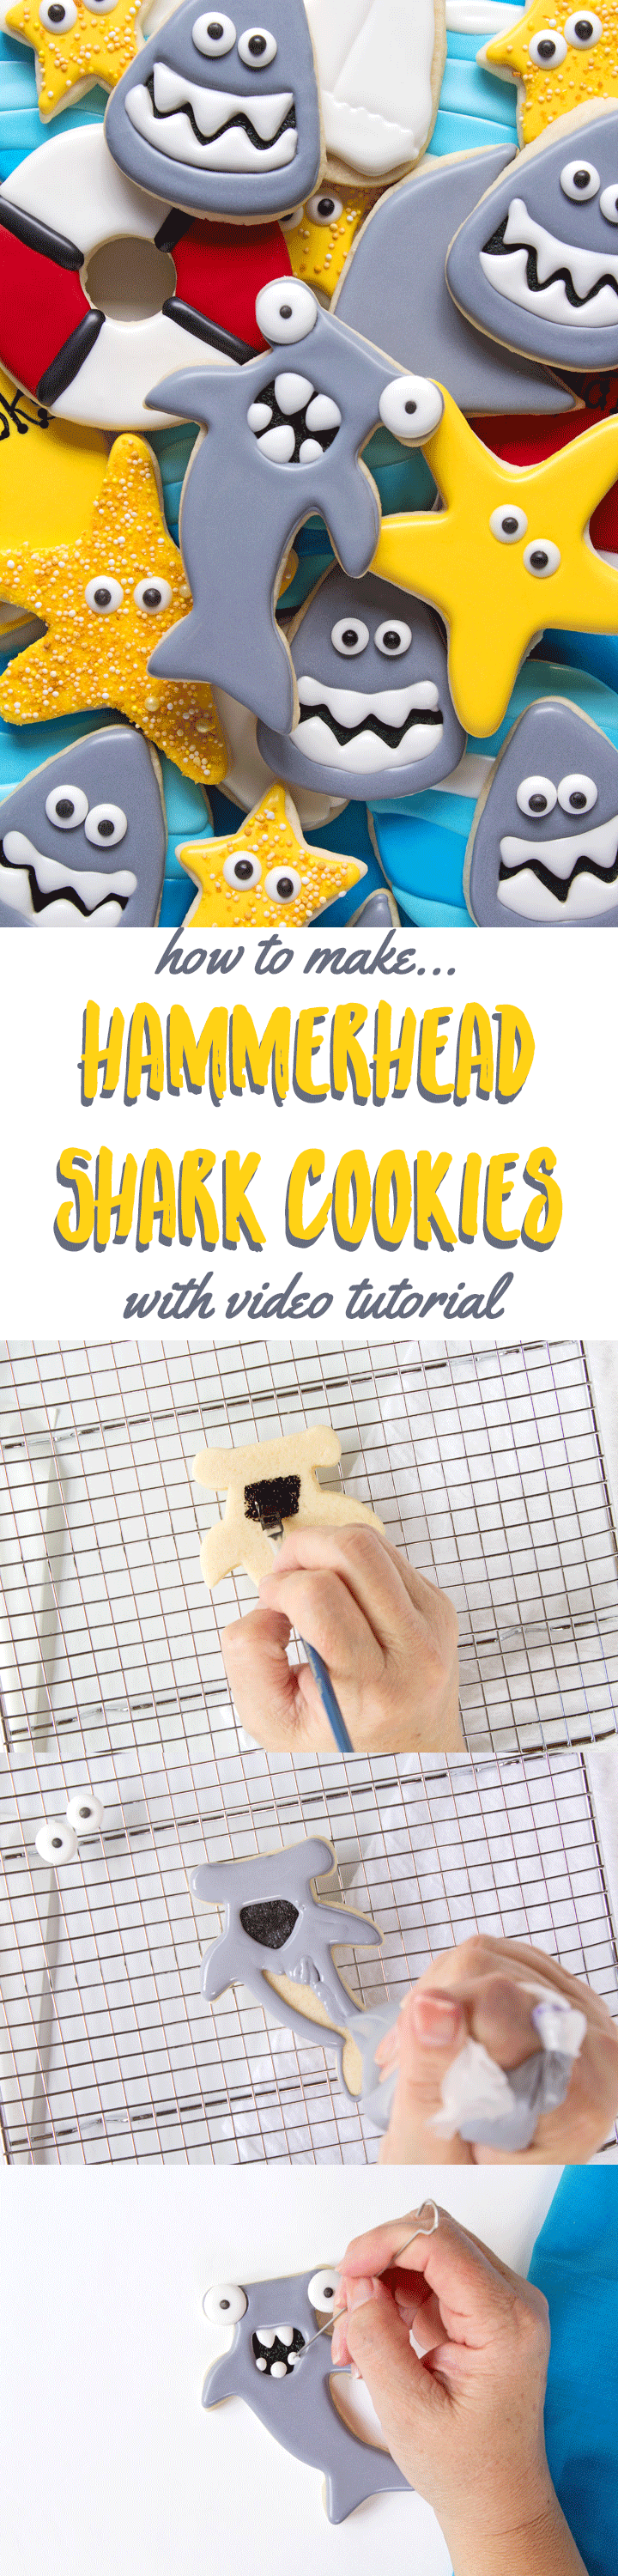 How to Make Hammerhead Shark Cookies with a How to Video | The Bearfoot Baker